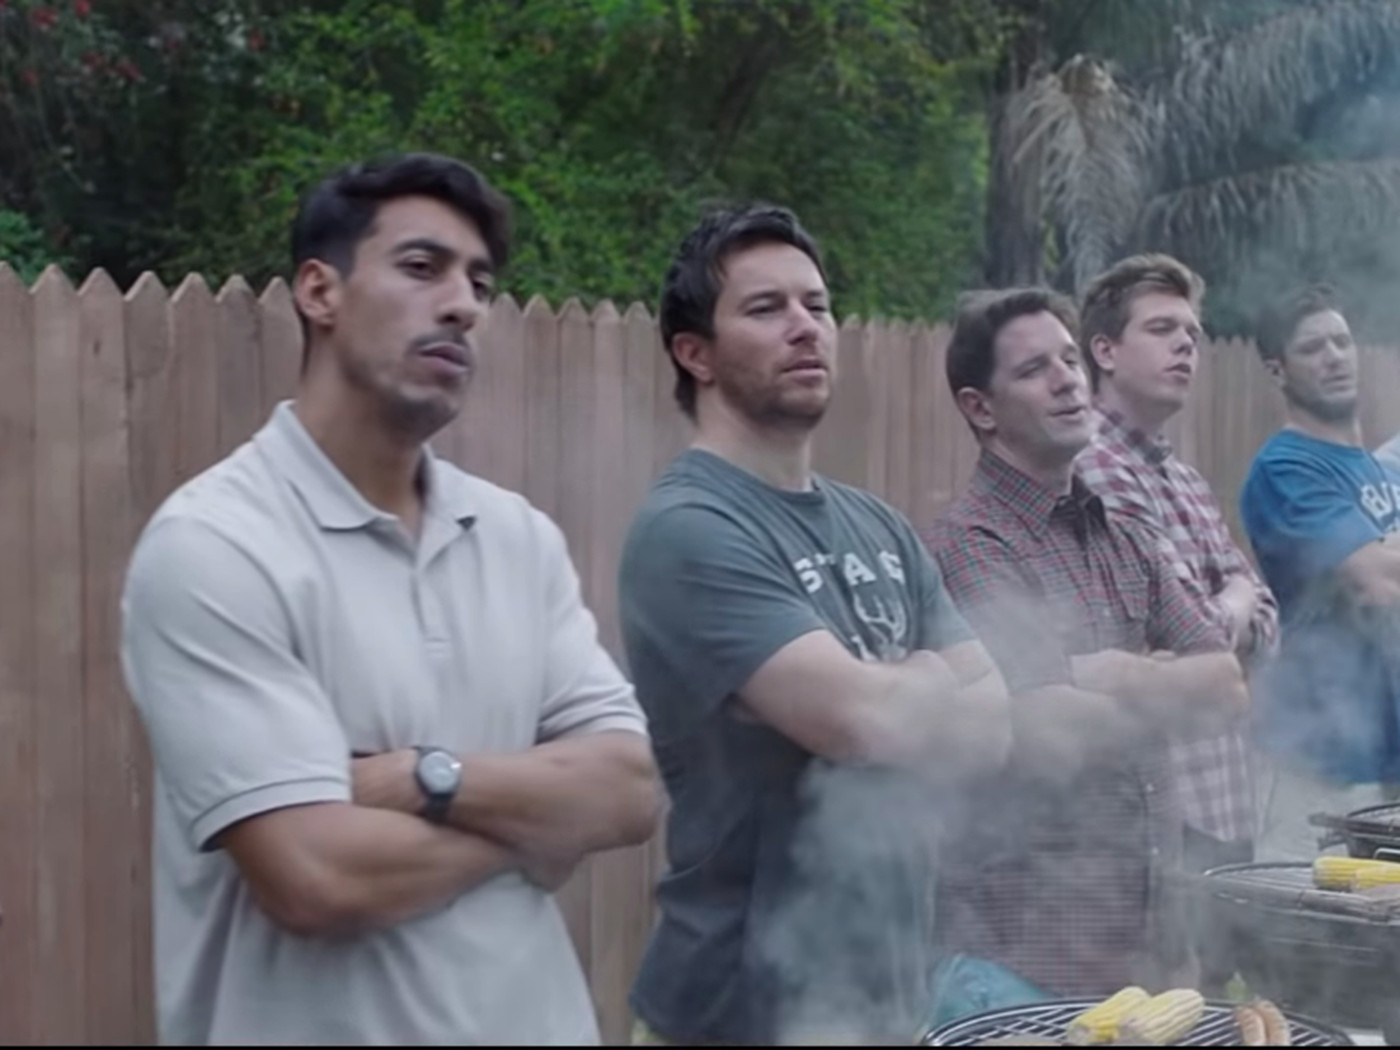 Gillette's toxic masculinity Super Bowl commercial